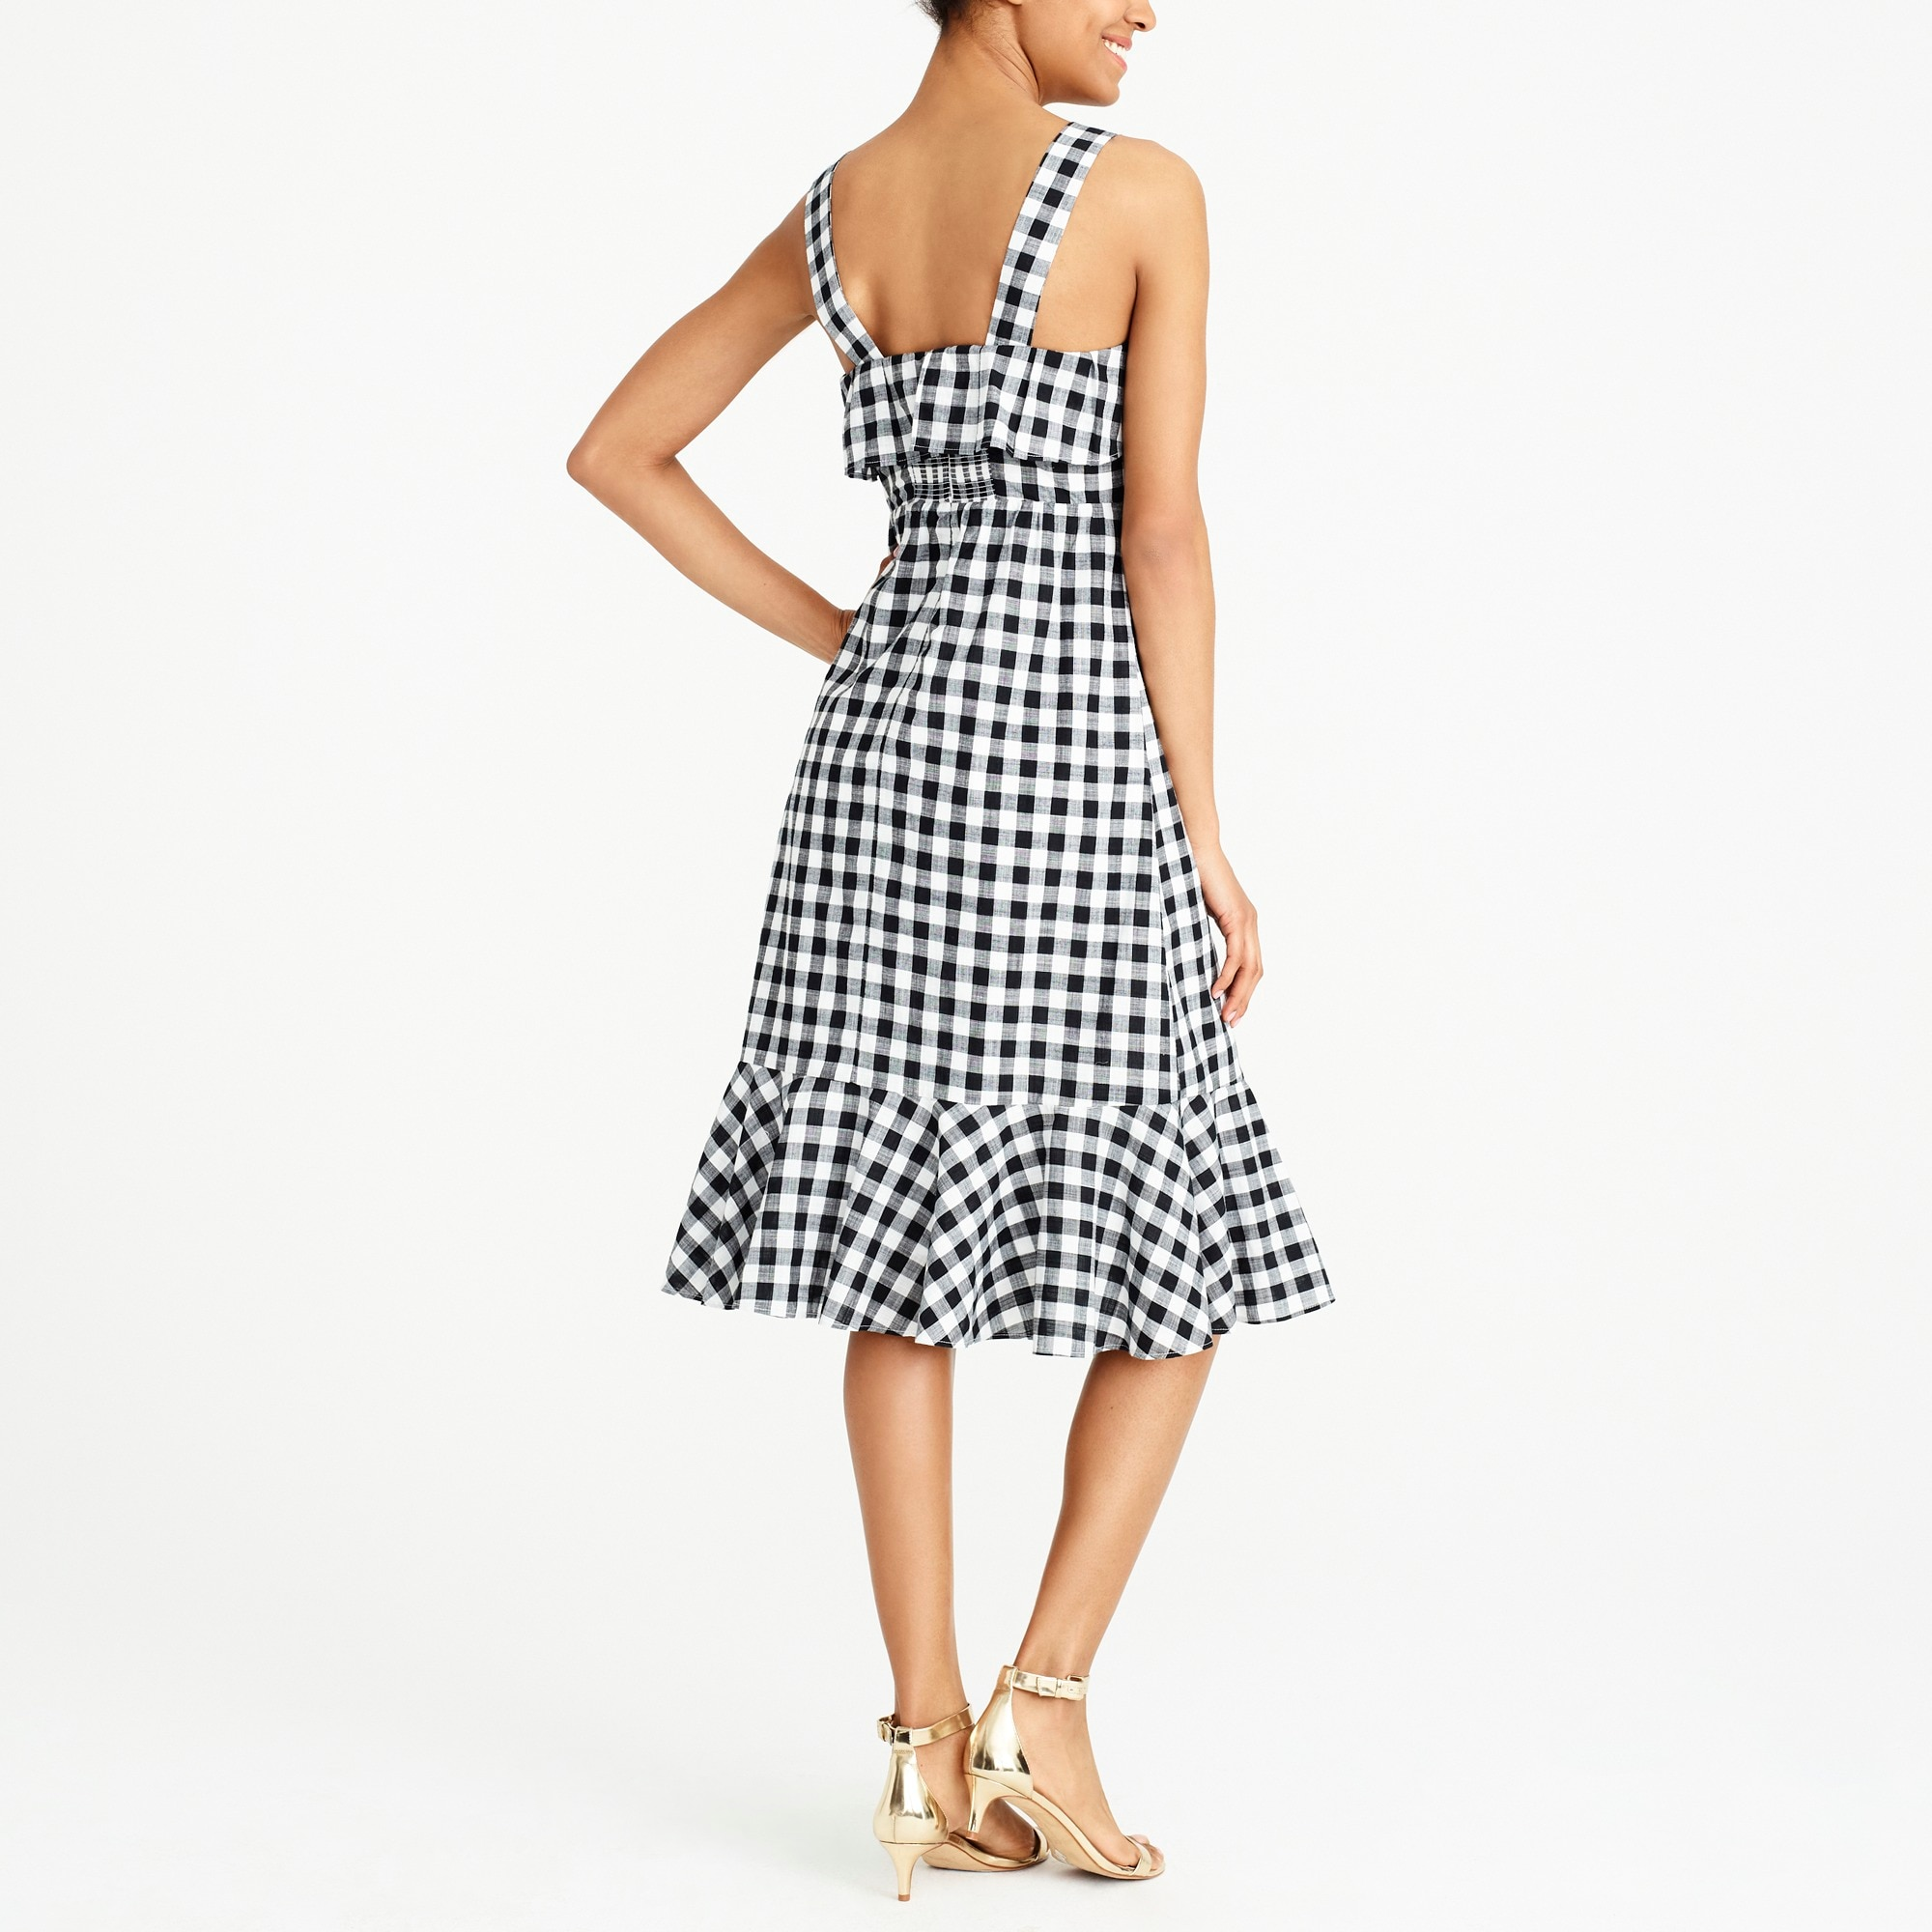 Image 3 for Midi dress in gingham